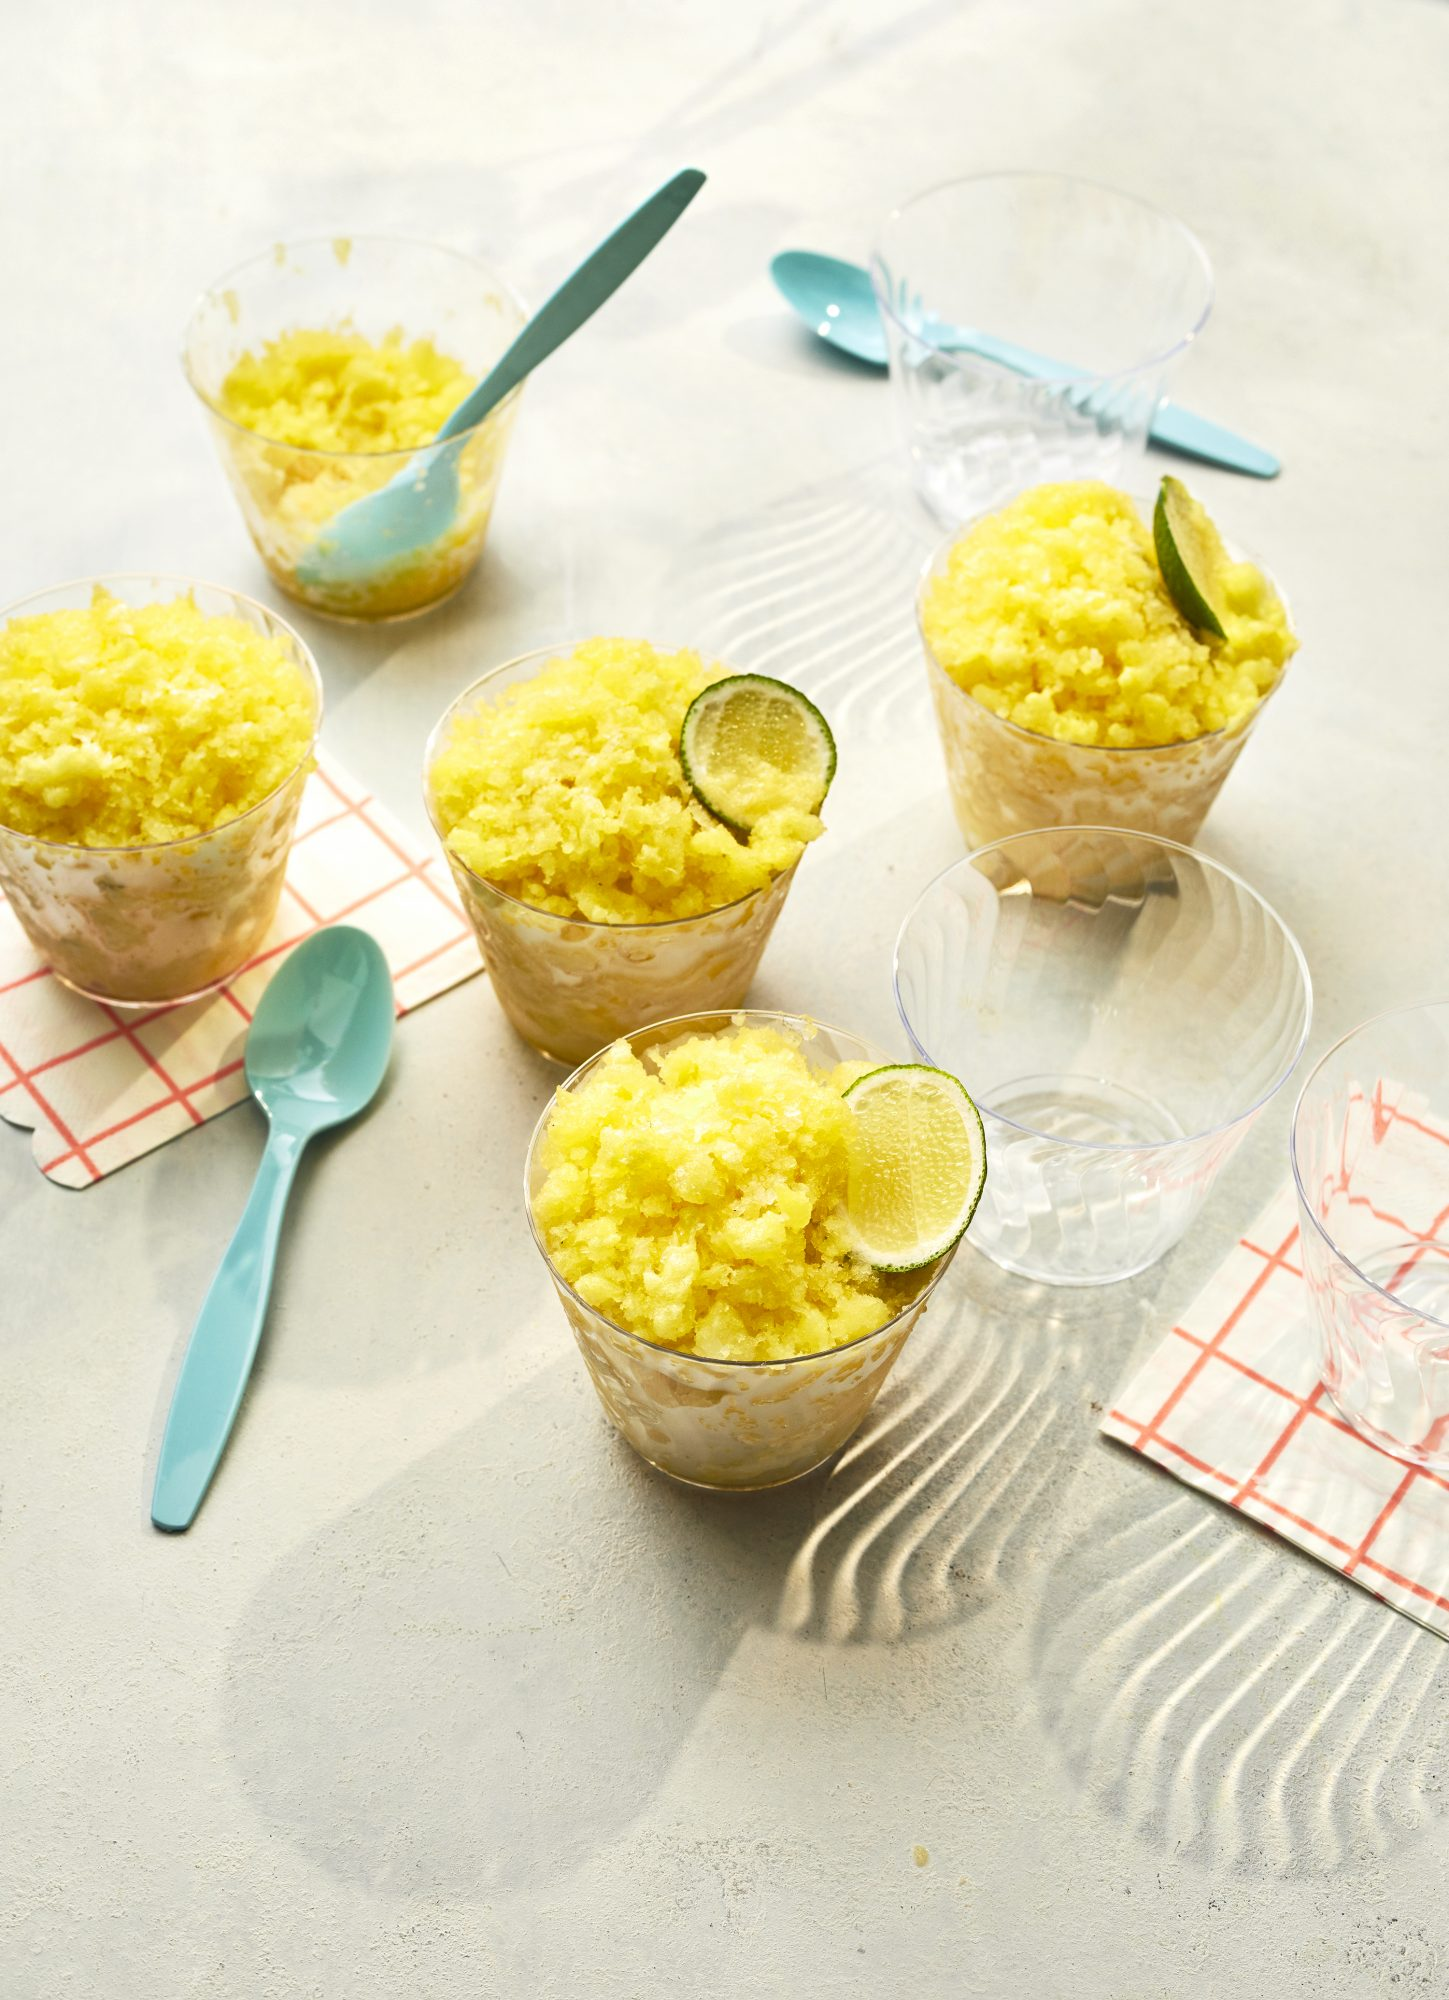 pineapple-lime-granita-0419foo